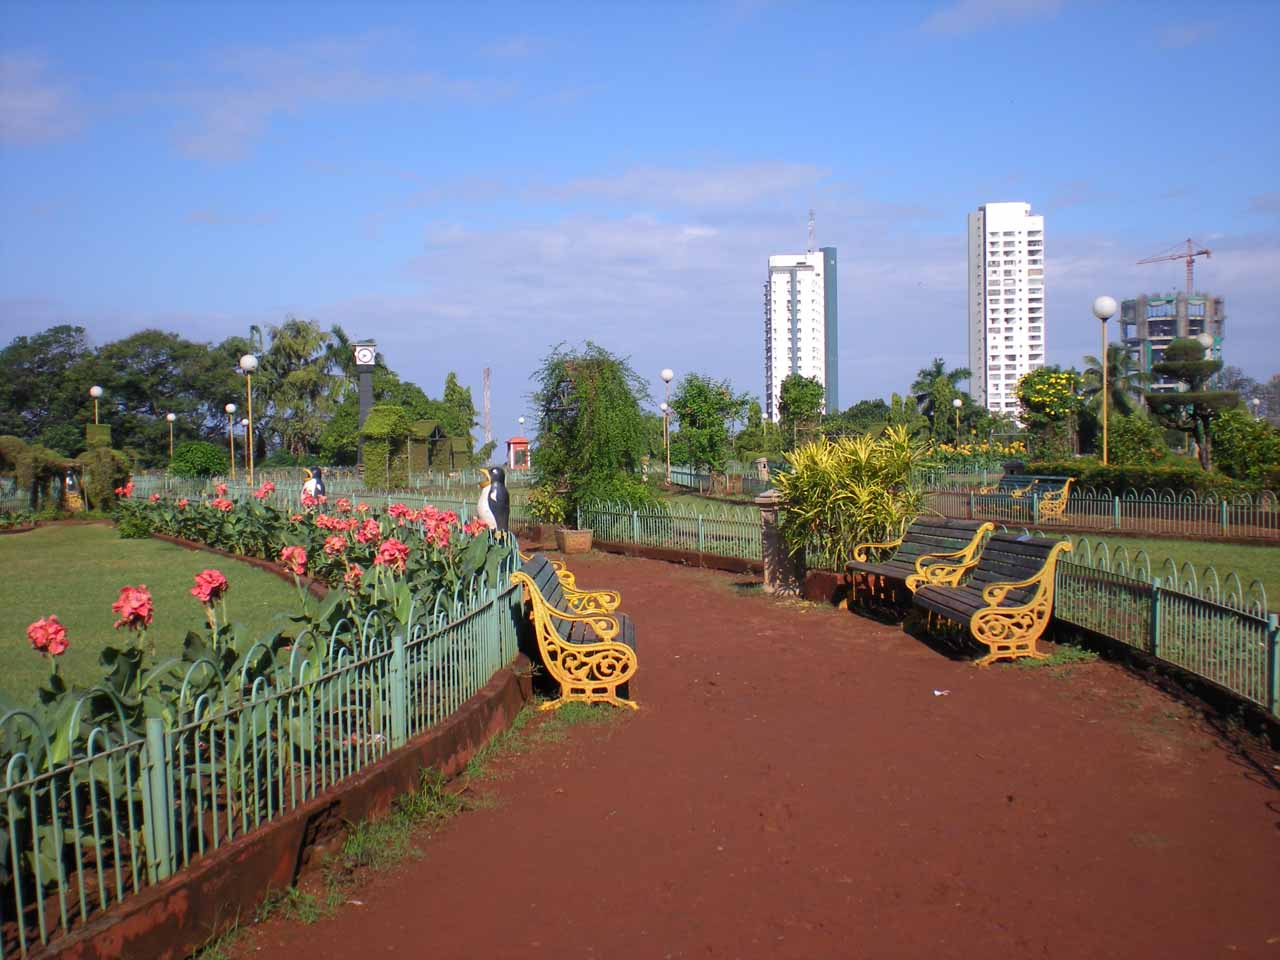 Some park in Mumbai that we briefly walked around